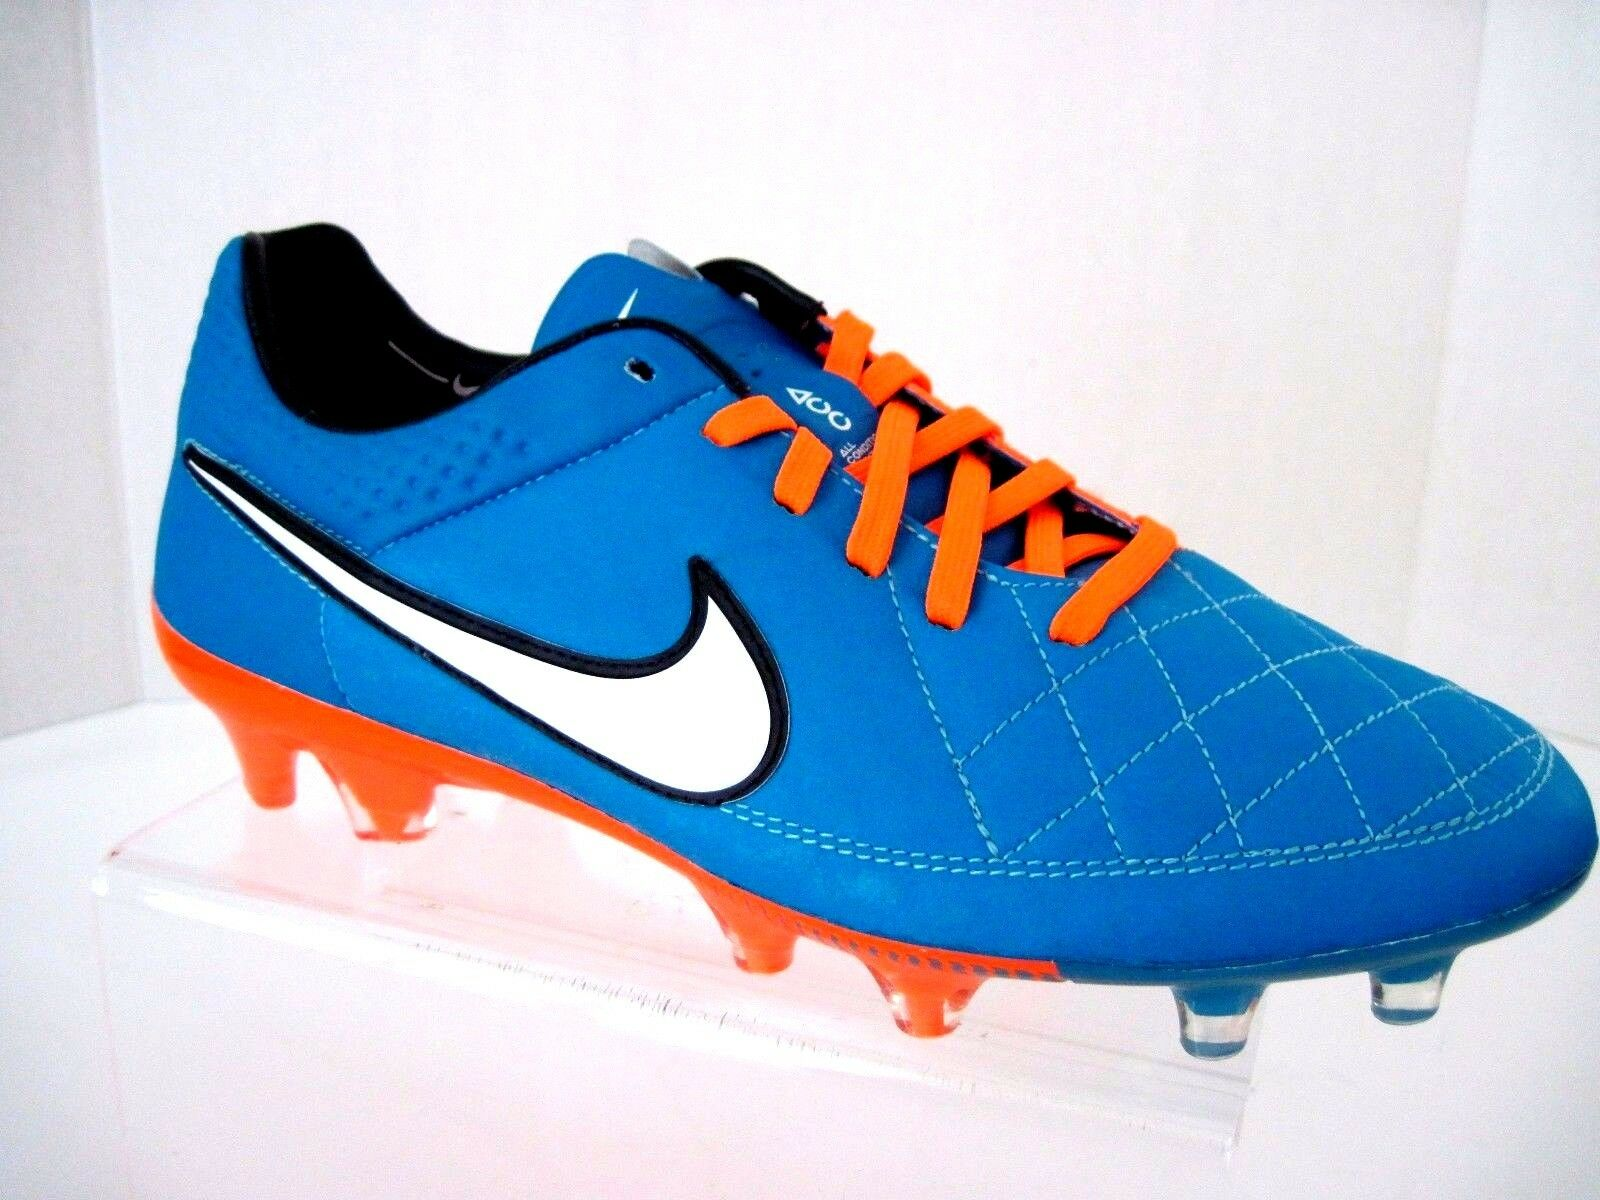 NIKE Tiempo Legend V FG Neon Turquoise Soccer Cleats 631518-419